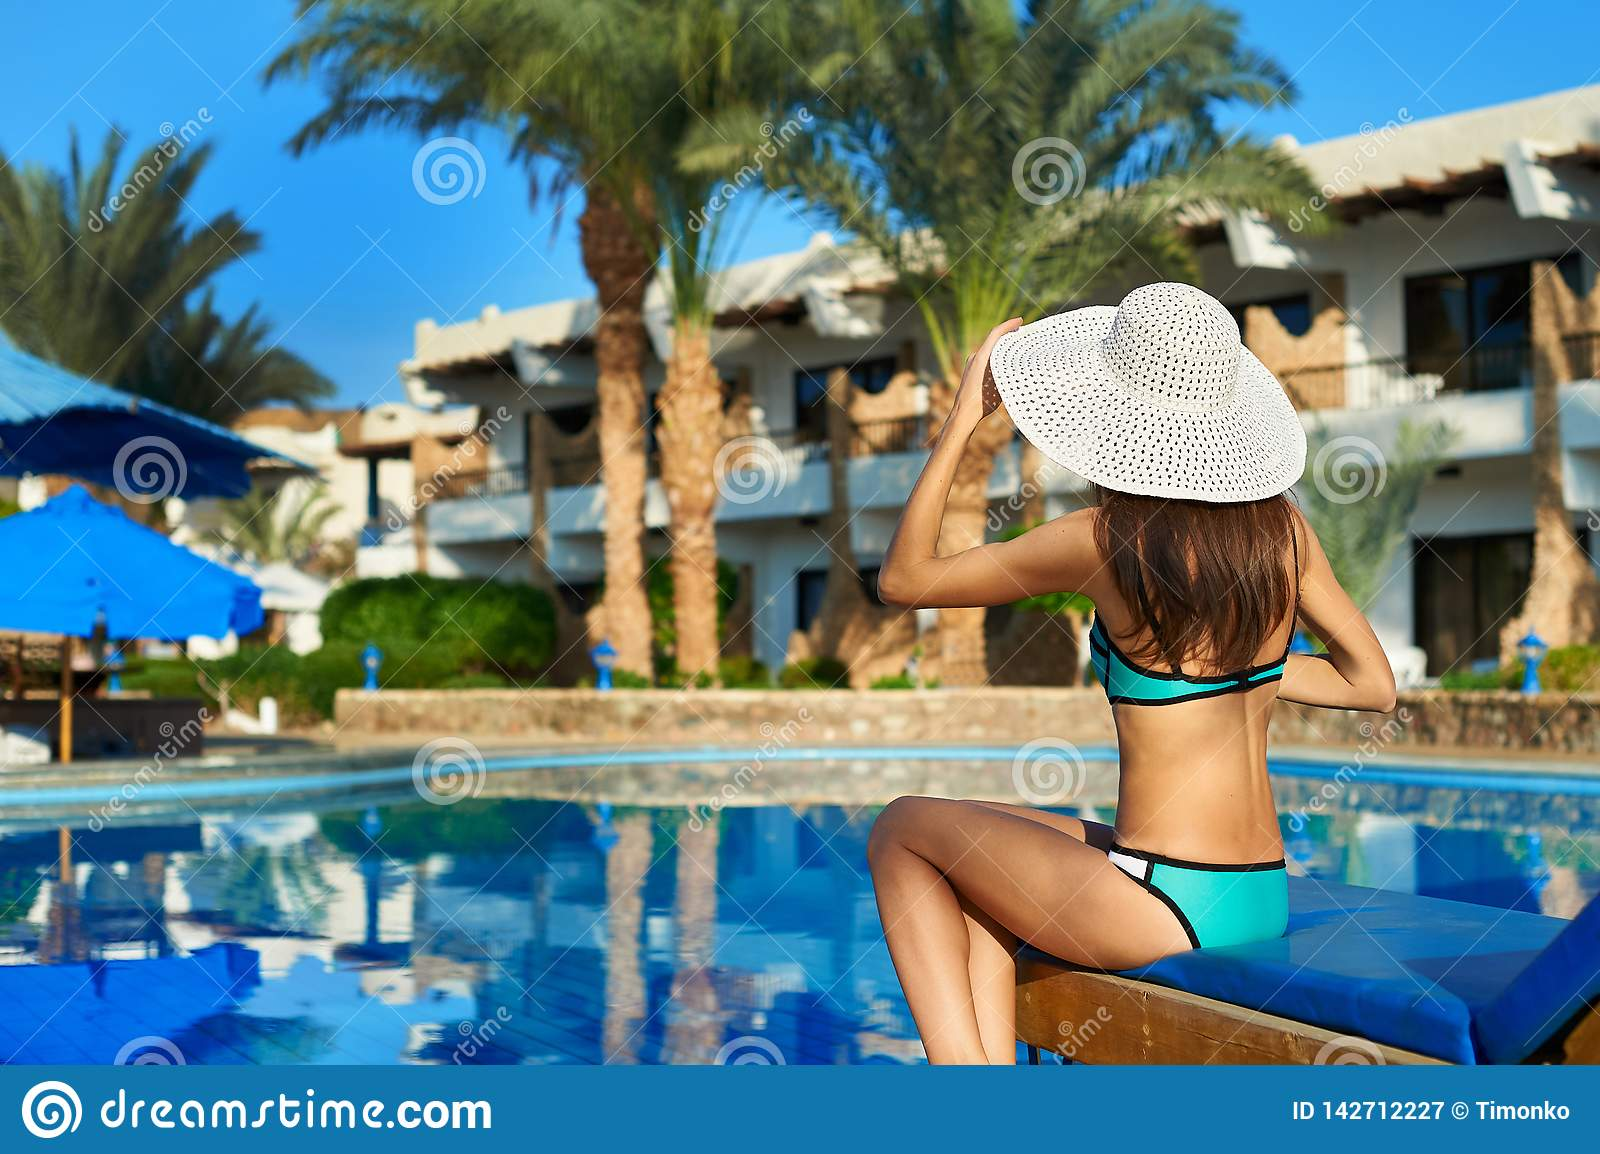 Young woman in hat sitting on a sun lounger near swimming pool, concept time to travel. Relax in the pool summer